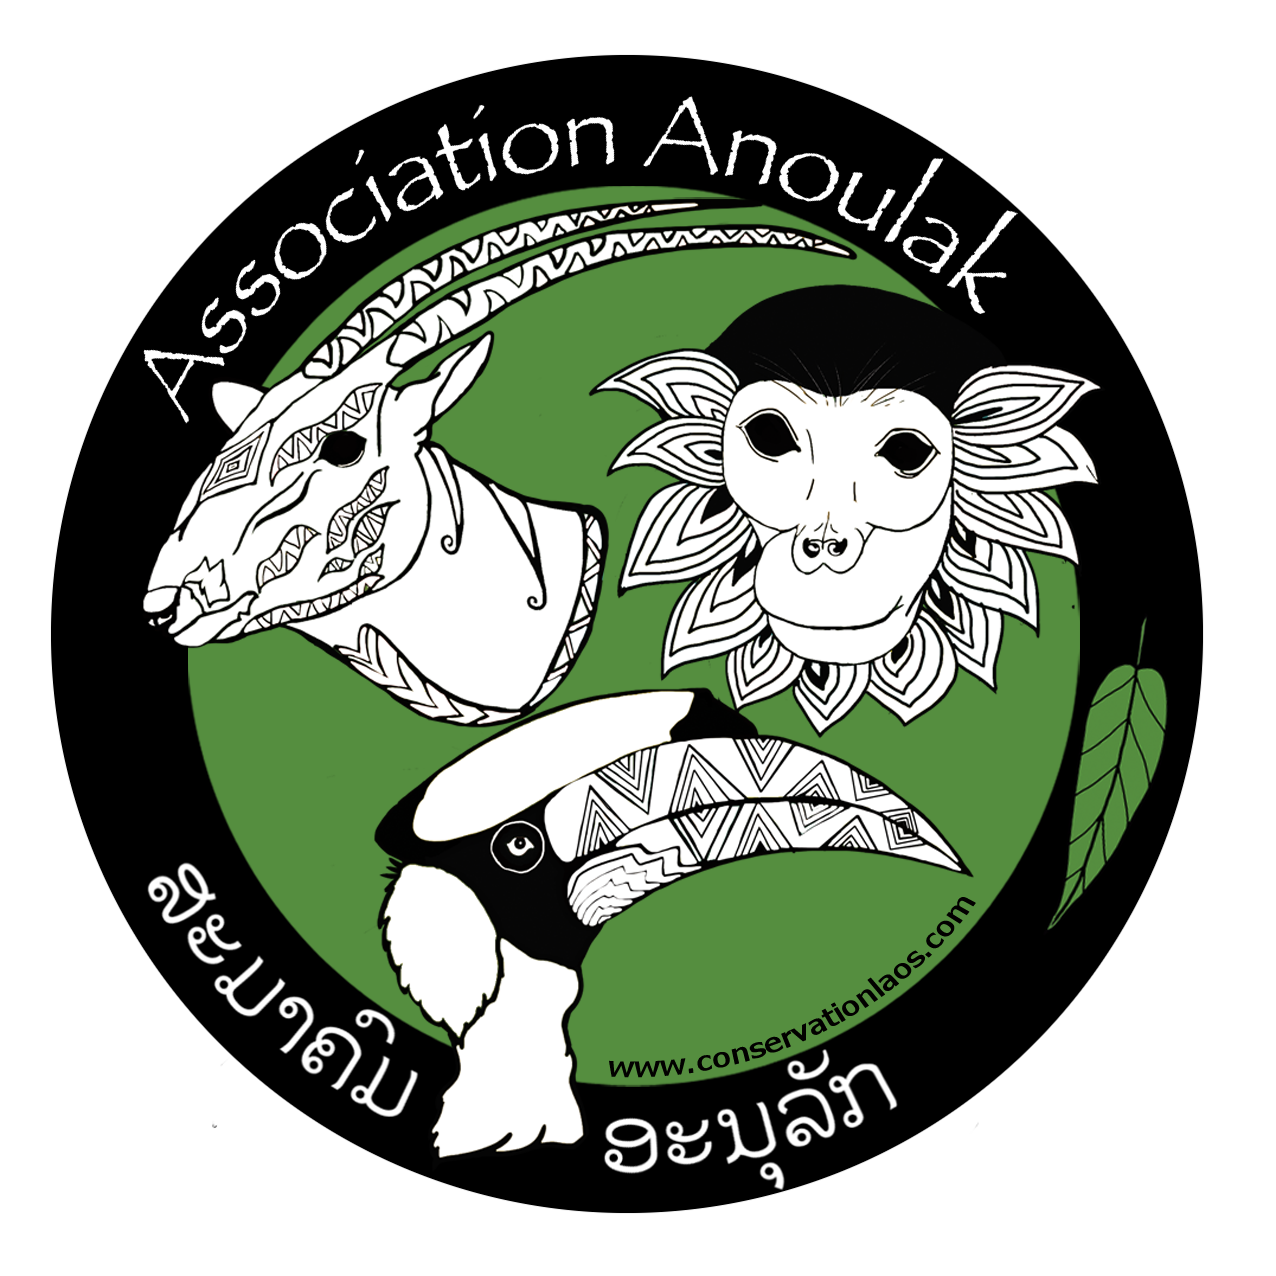 Association Anoulak